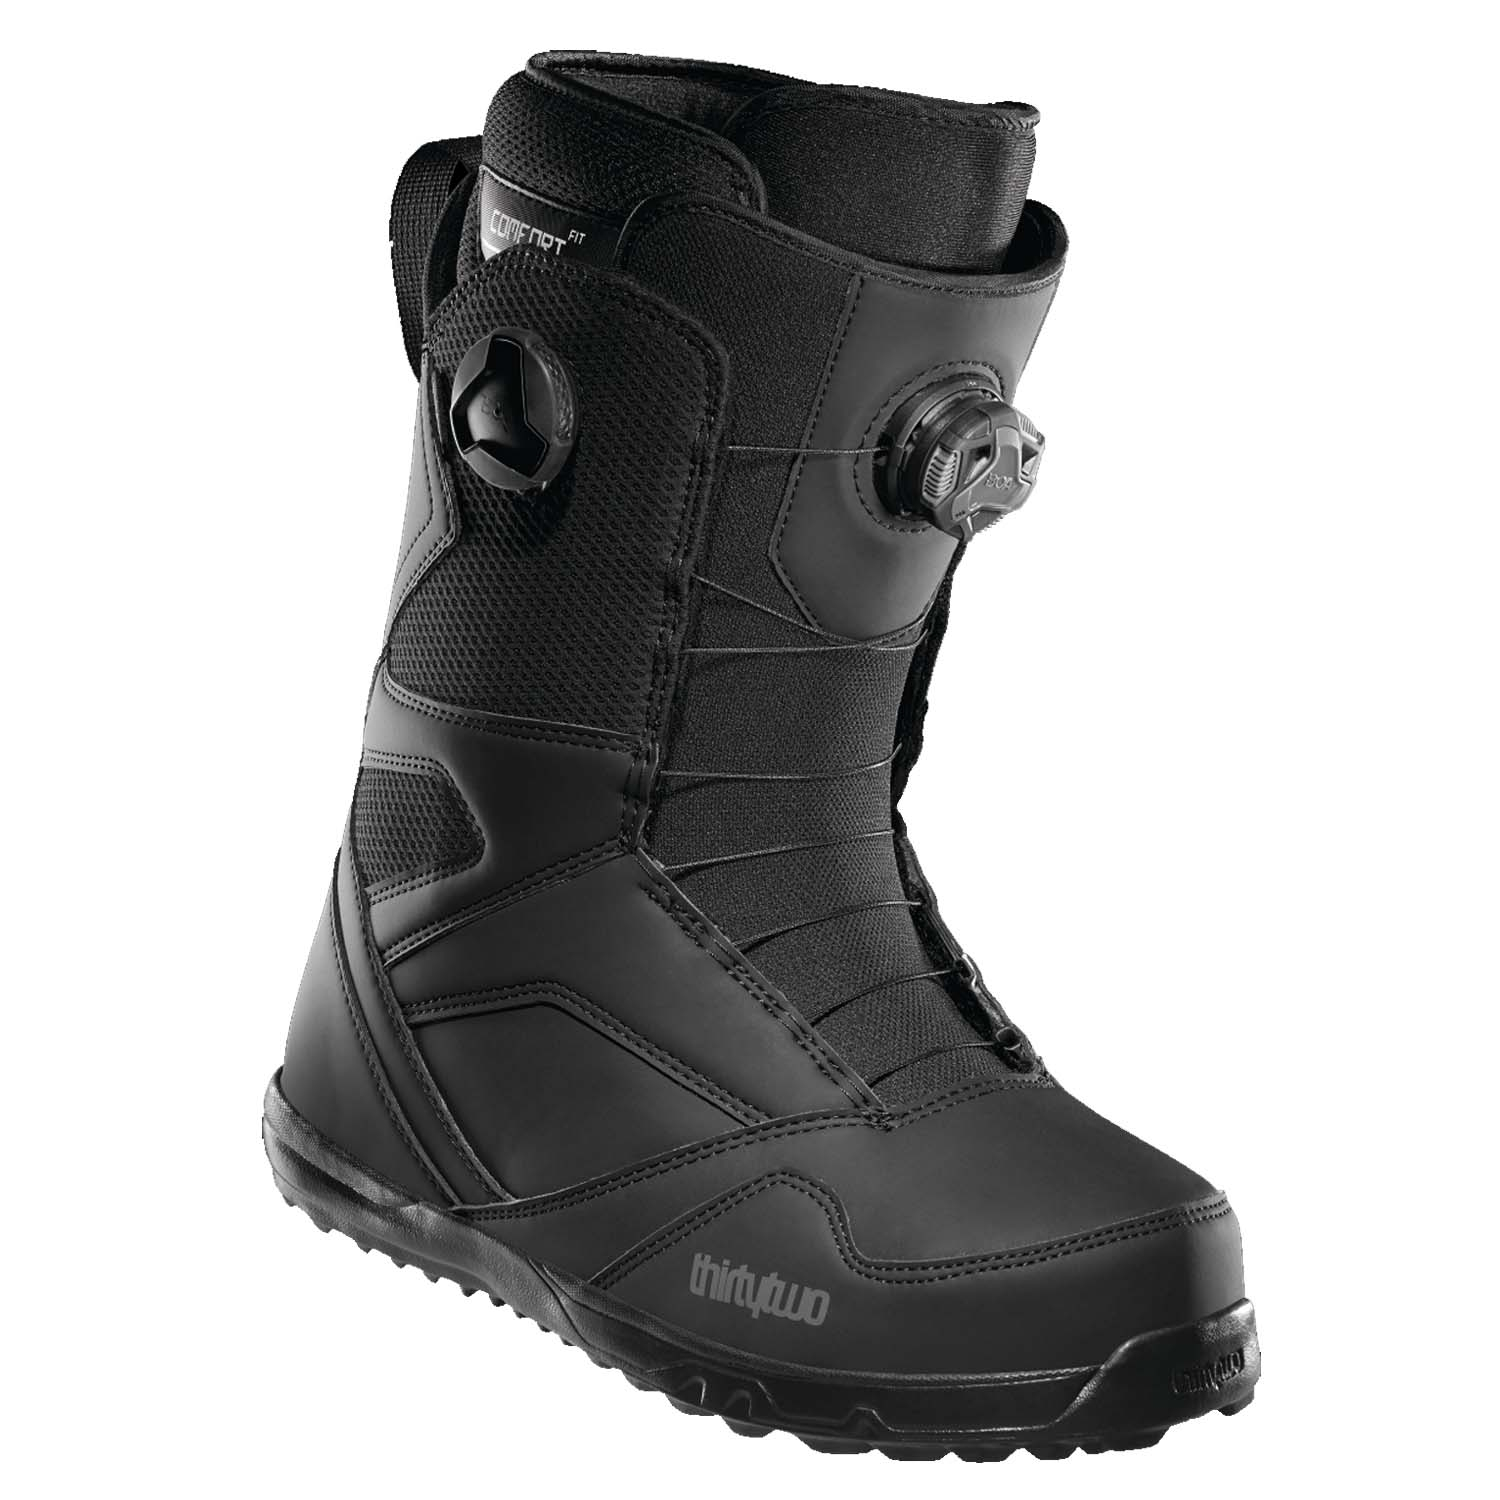 ThirtyTwo STW Double Boa Snowboard Boots Black 2021